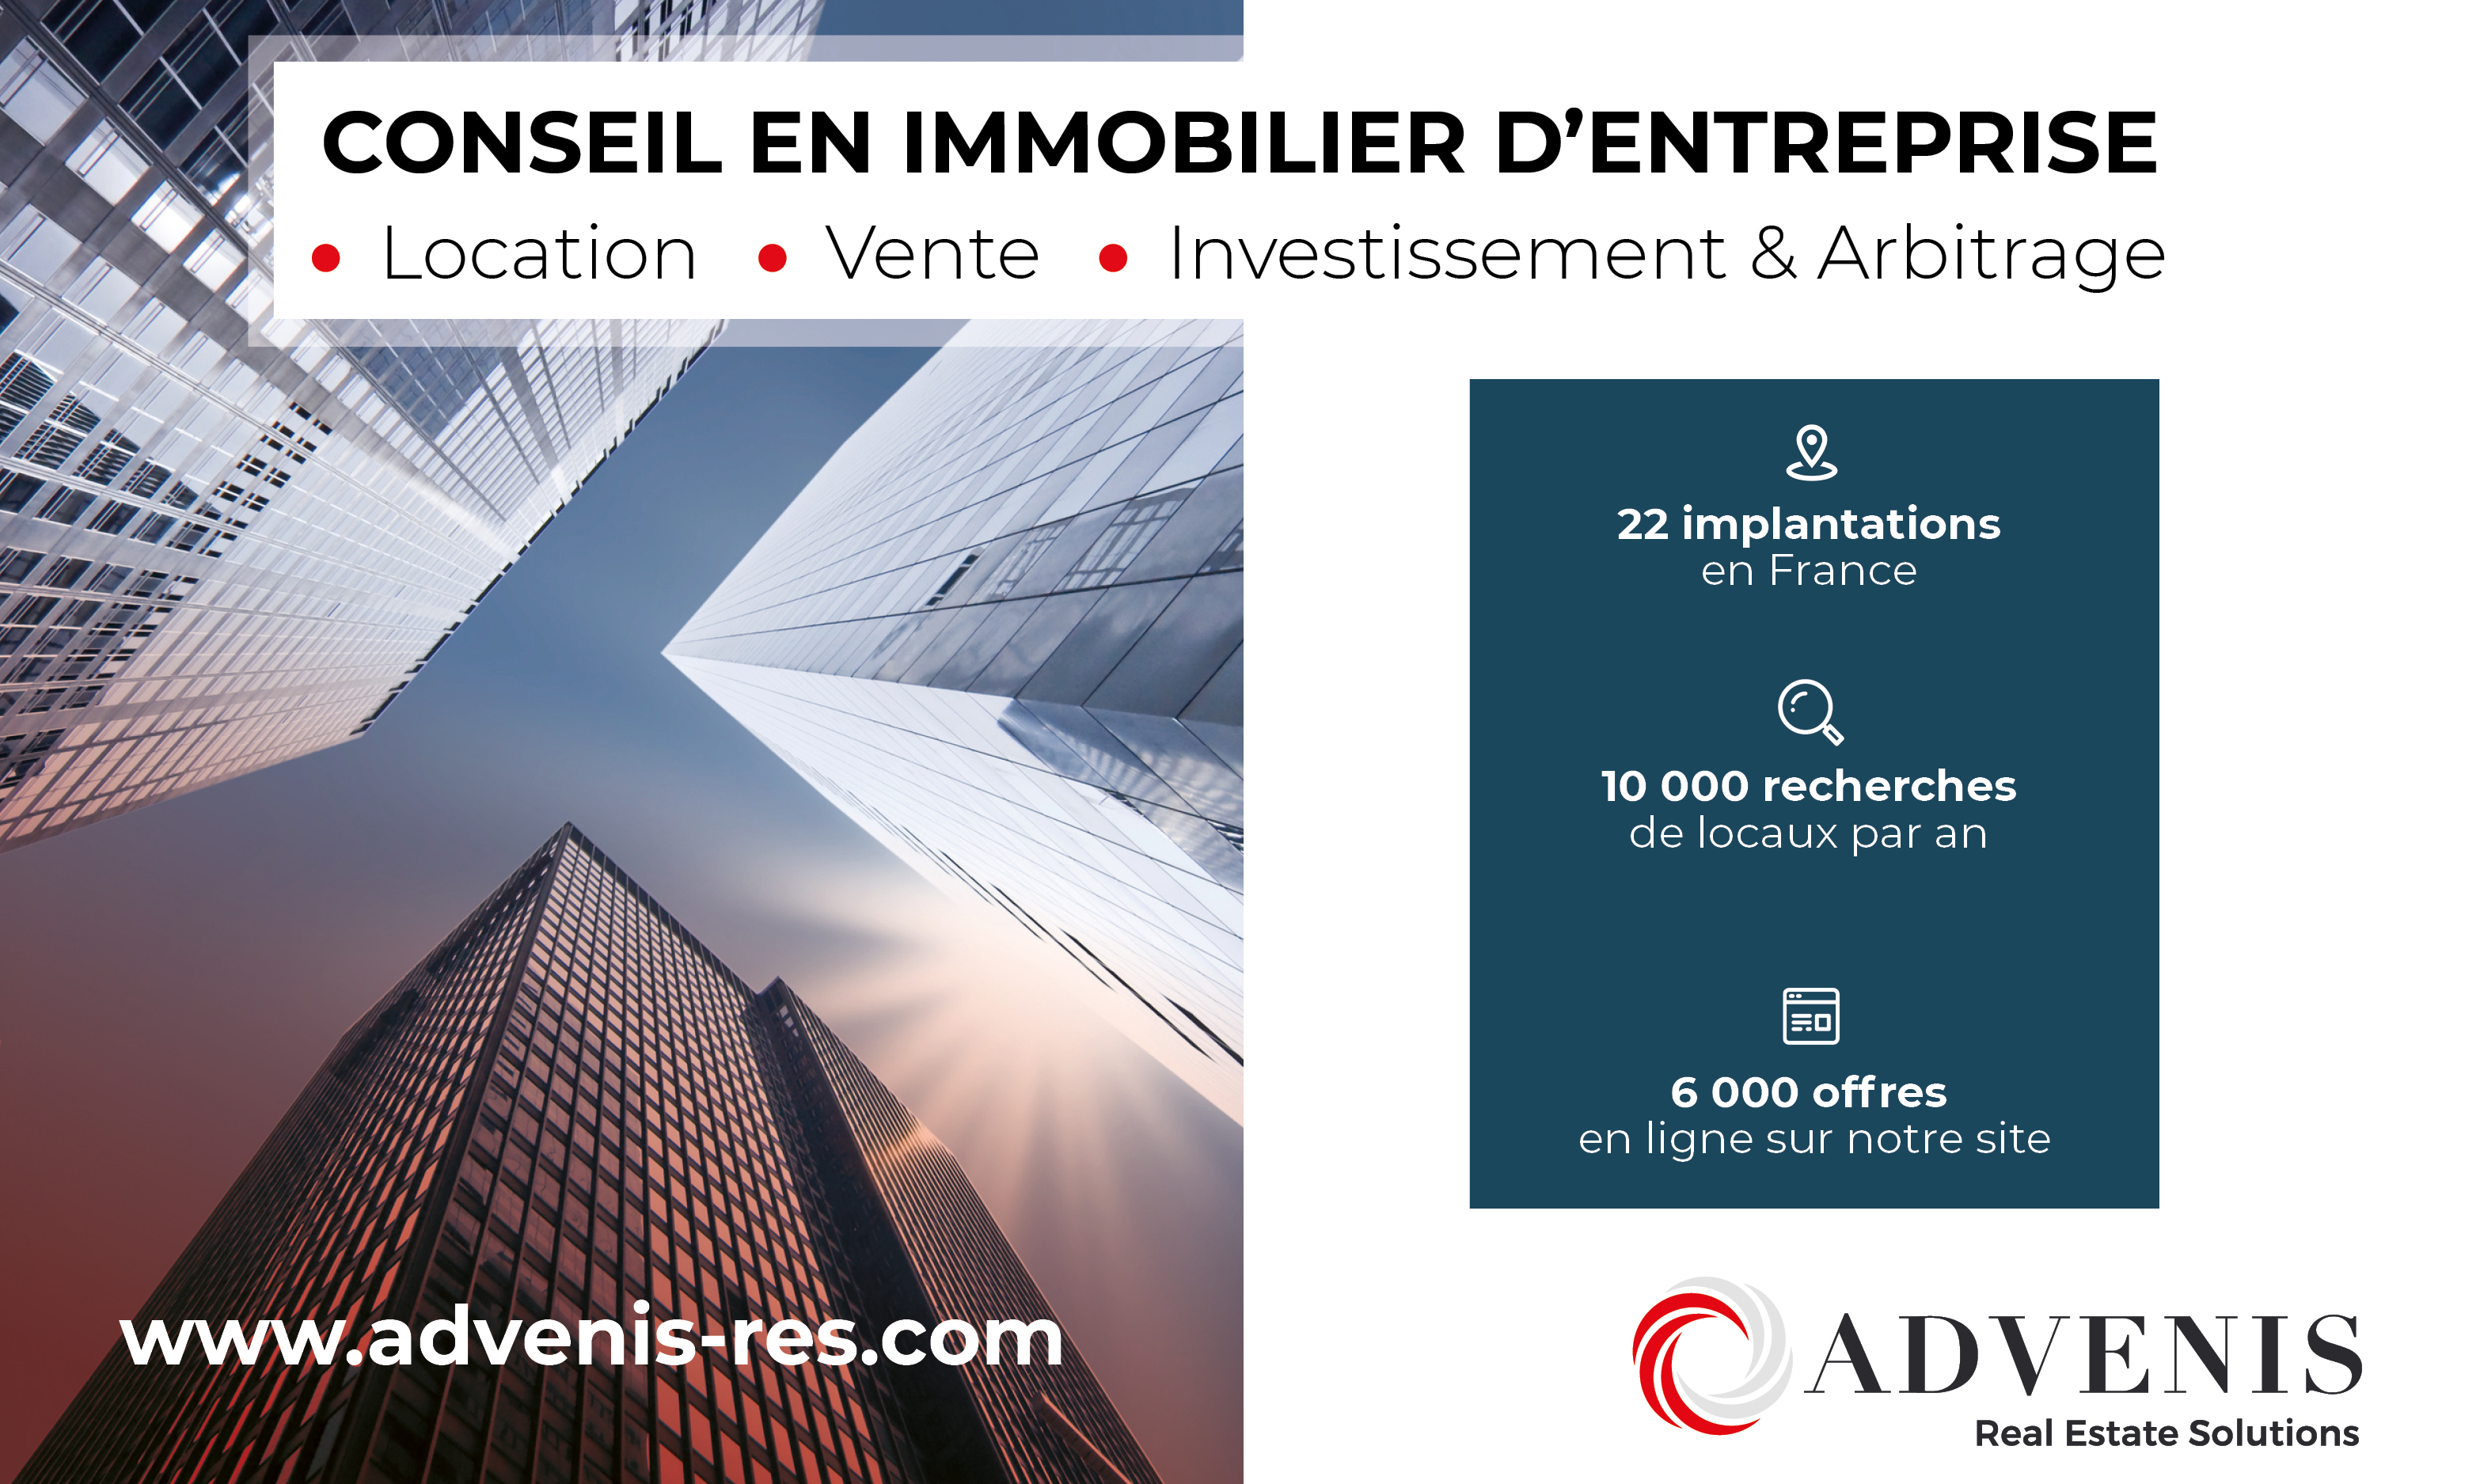 ADVENIS REAL ESTATE SOLUTIONS RENNES - Image